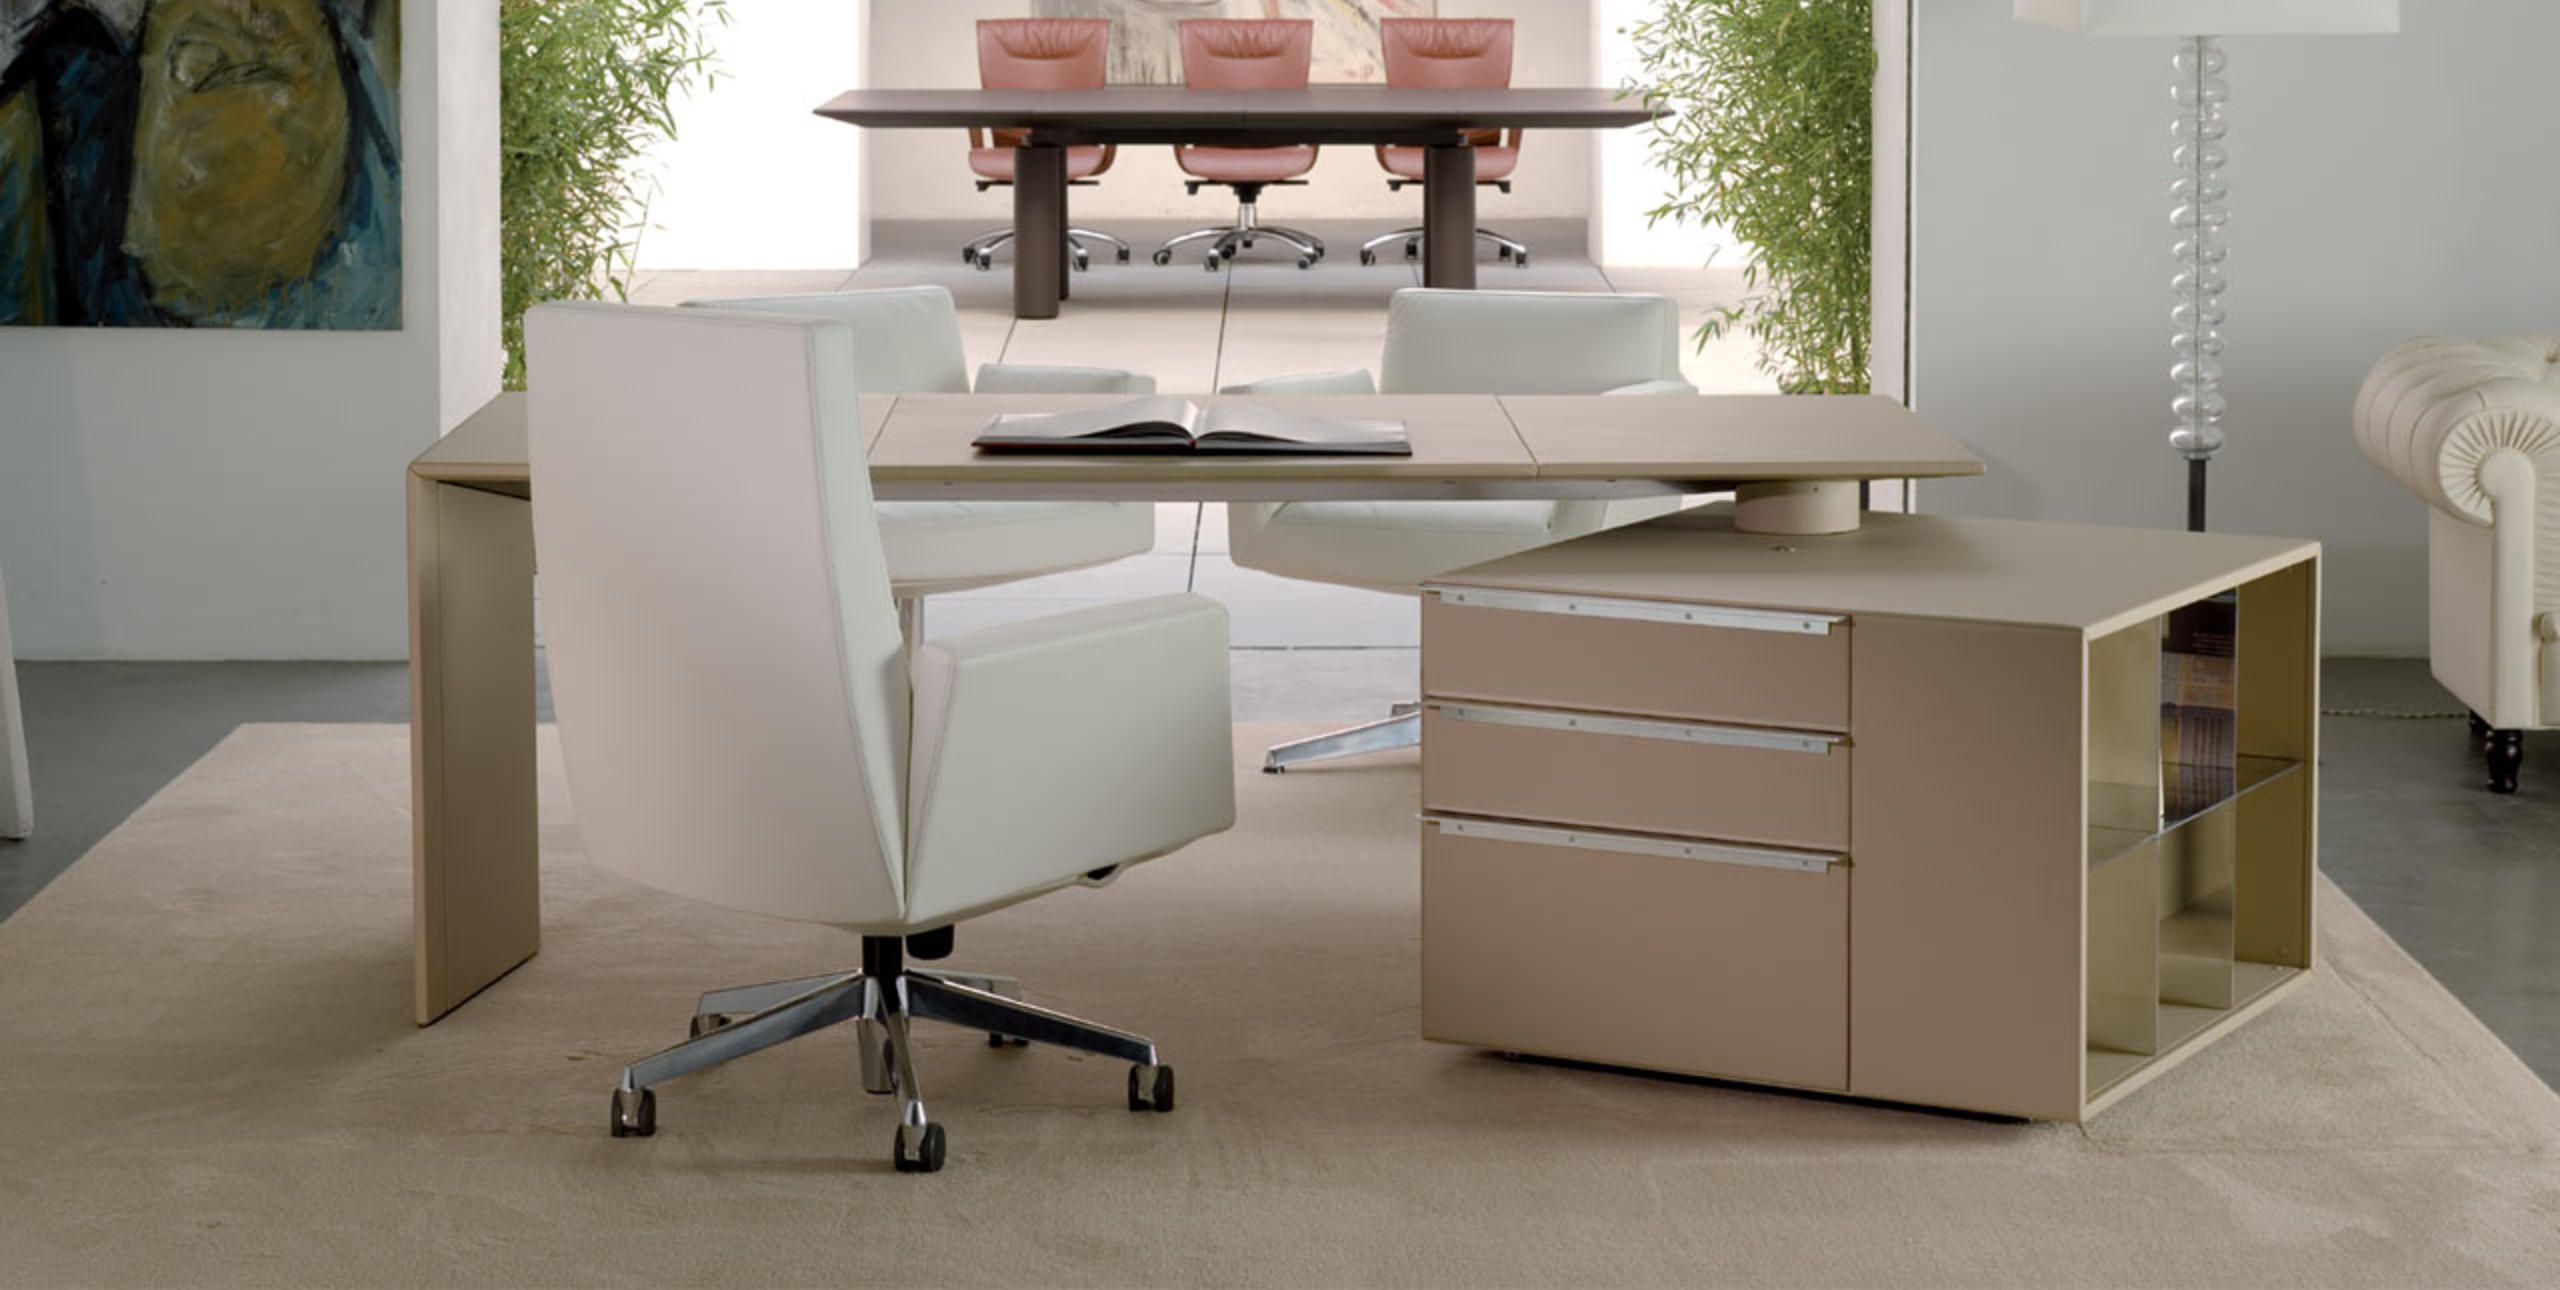 ceo cube desk by poltrona frau  design lella  massimo  - discover all the information about the product wooden desk  aluminum leather  contemporary c by lella  massimo vignelli  poltrona frau andfind where